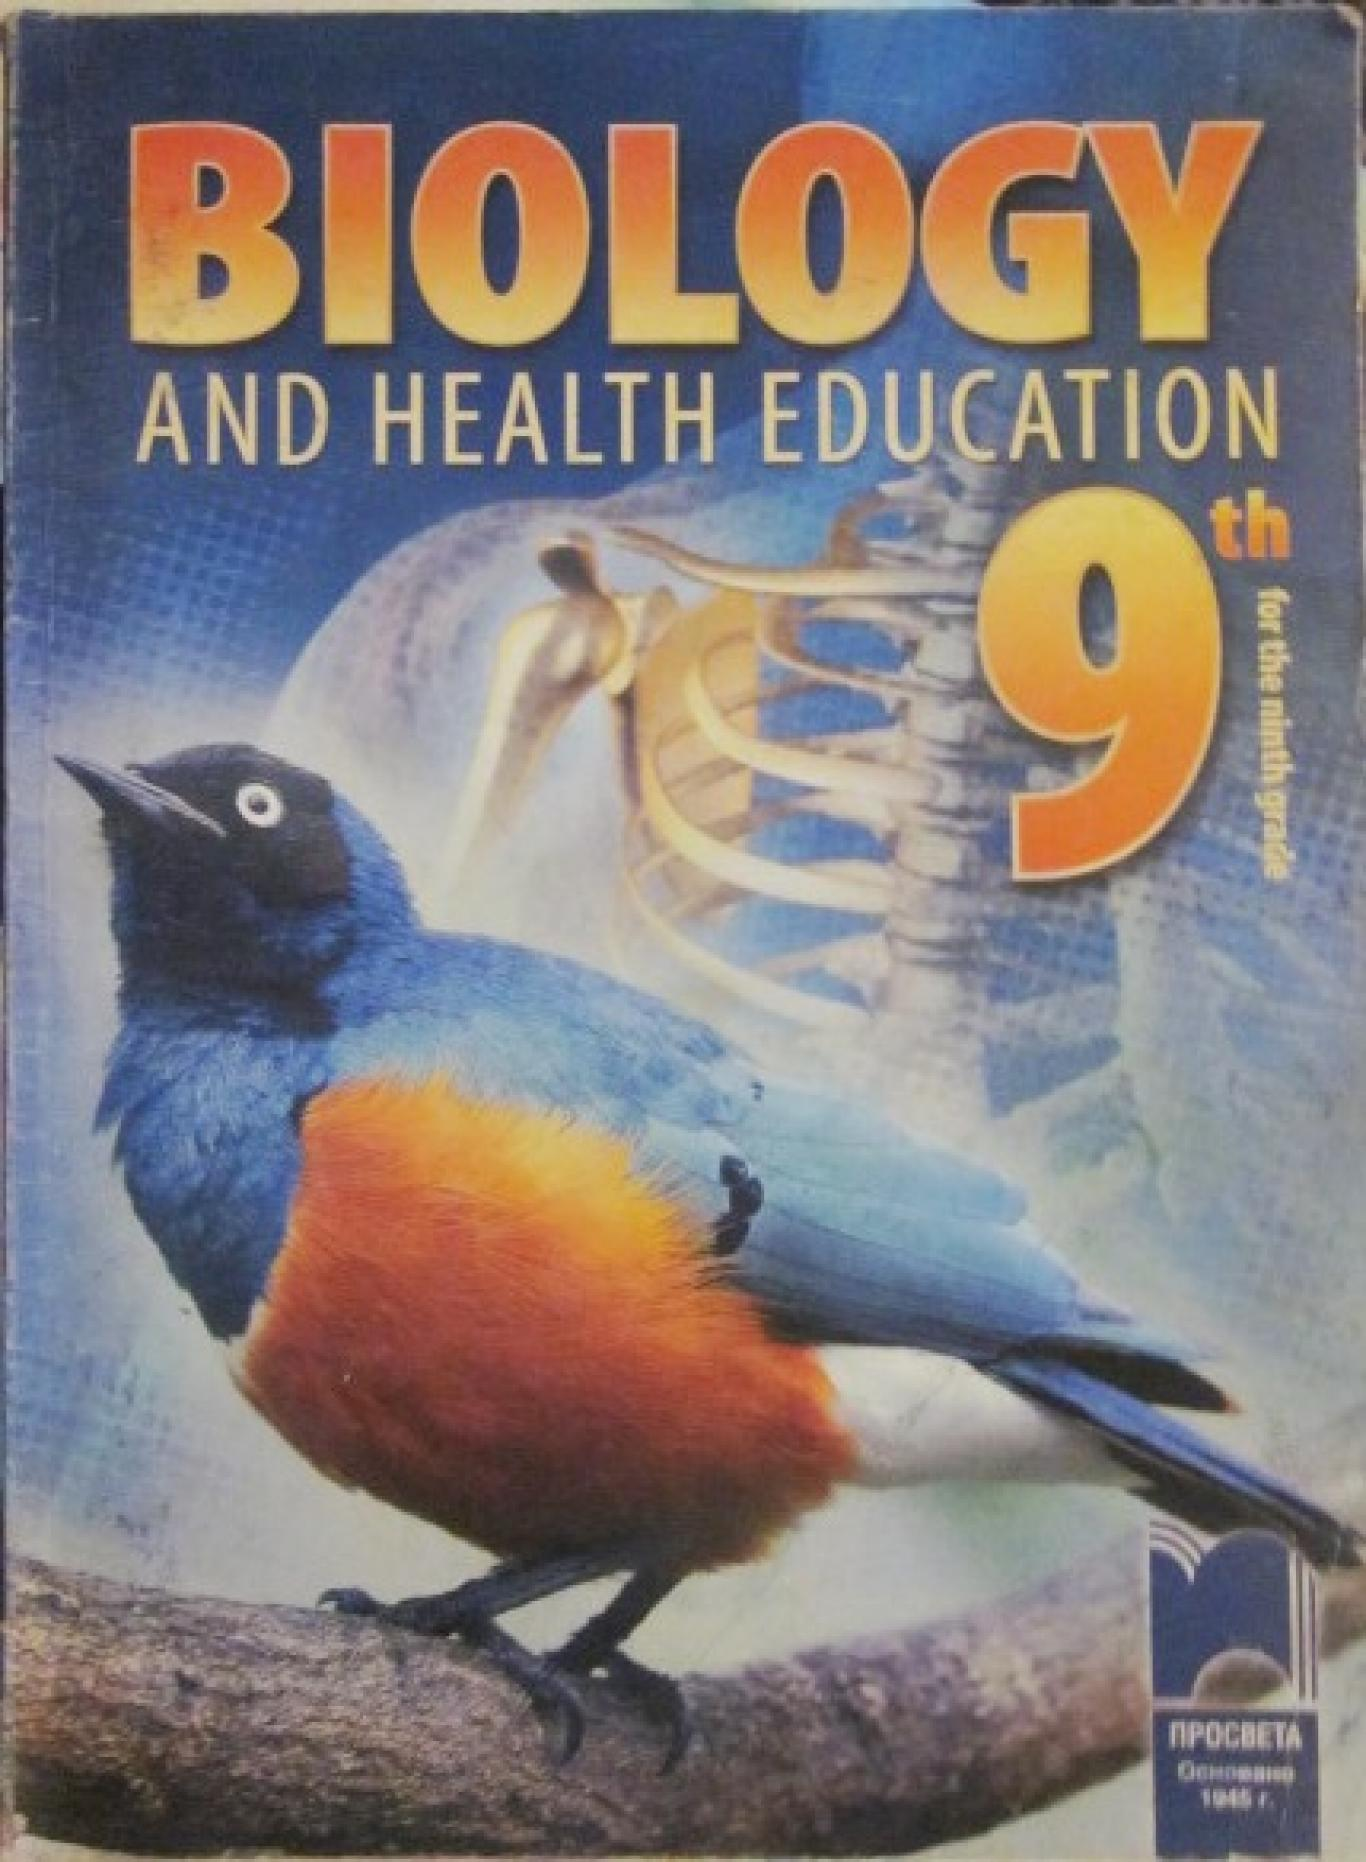 Biology and health education for the 9th grade , Колектив